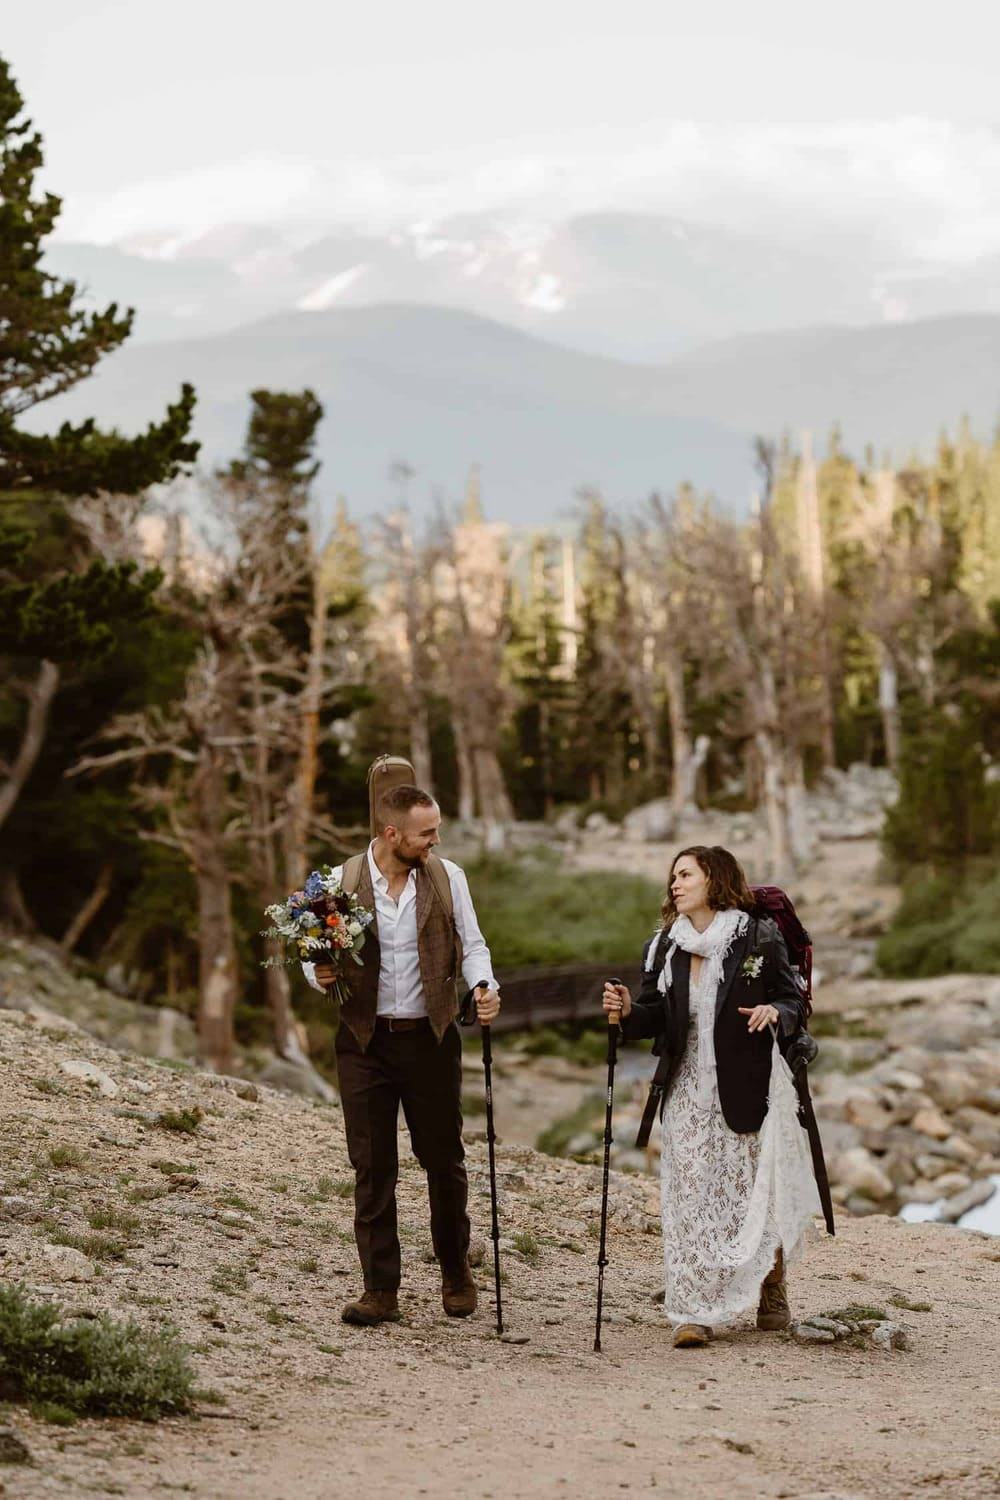 ALPINE HIKING ADVENTURE ELOPEMENT IN COLORADO | COLORADO ADVENTURE WEDDING AND ELOPEMENT PHOTOGRAPHER | JUSTYNA E BUTLER PHOTOGRAPHY | MICHAEL + COURTNEY